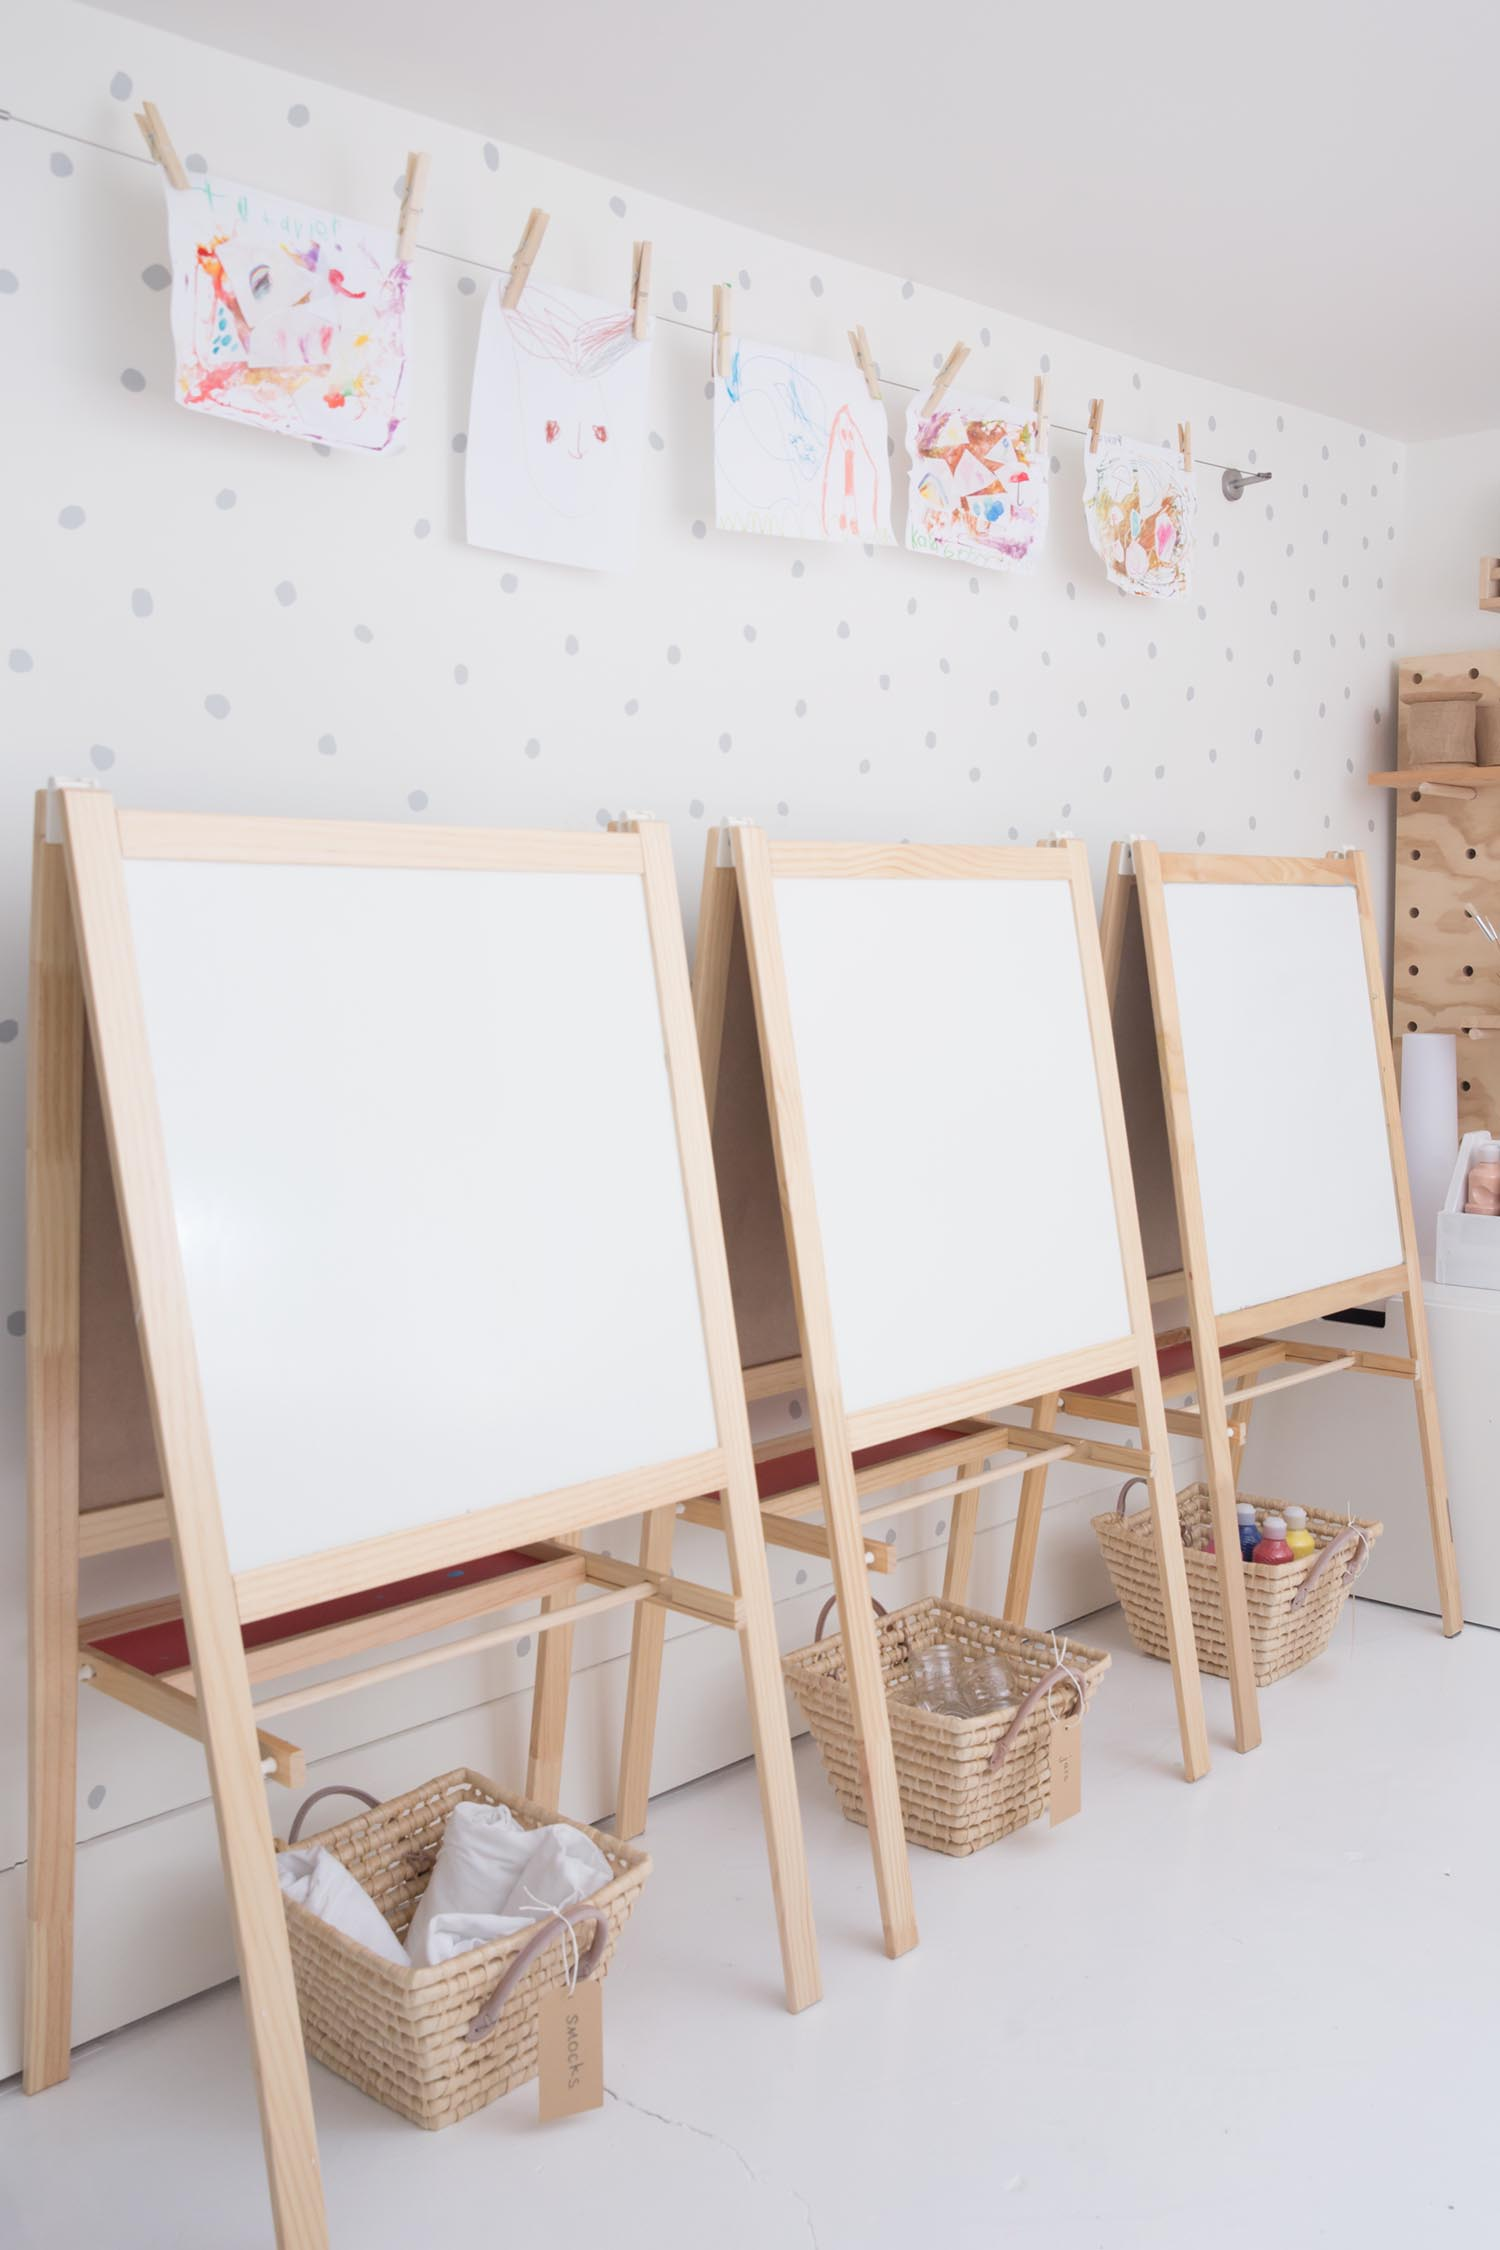 paint easels in kids art space